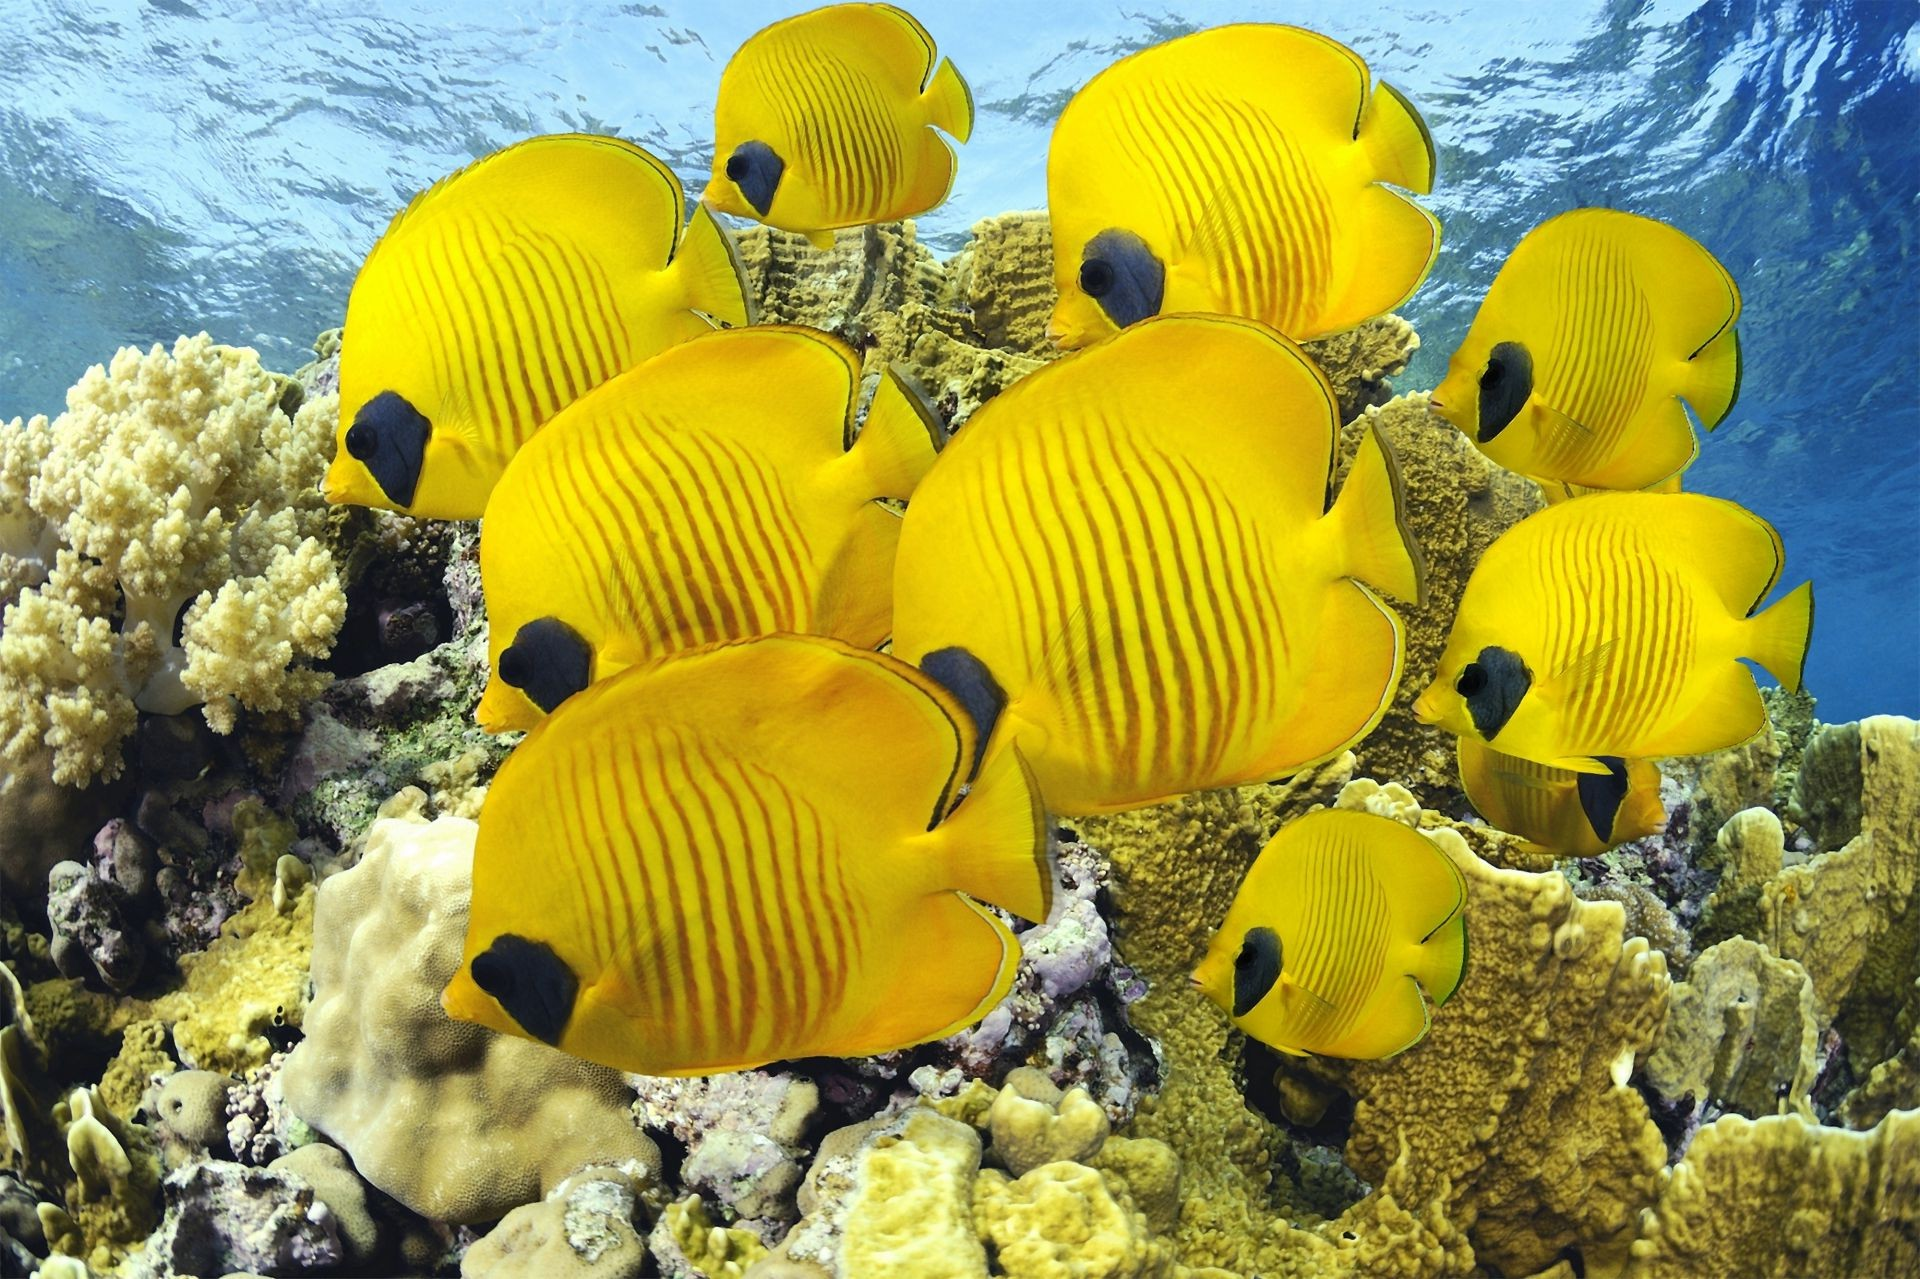 animals underwater ocean water sea tropical nature fish coral travel fair weather color reef summer